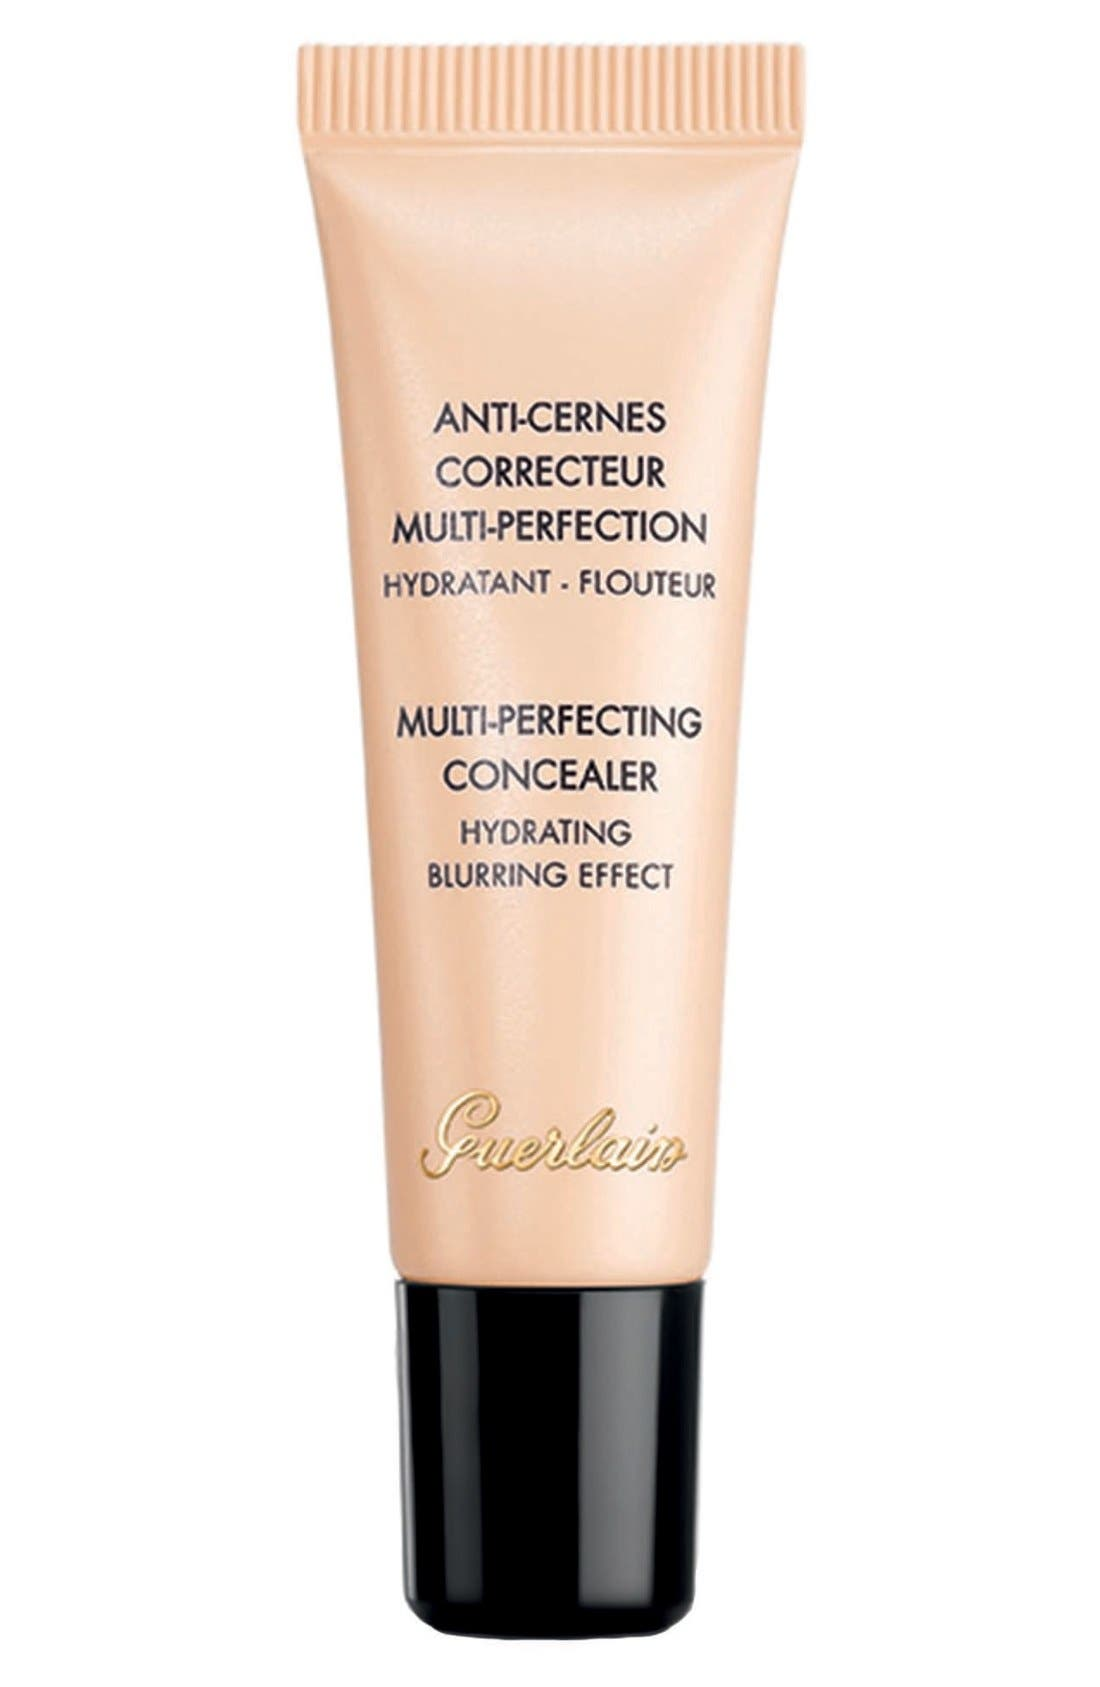 Multi-Perfecting Concealer Hydrating Blurring Effect,                         Main,                         color, 01